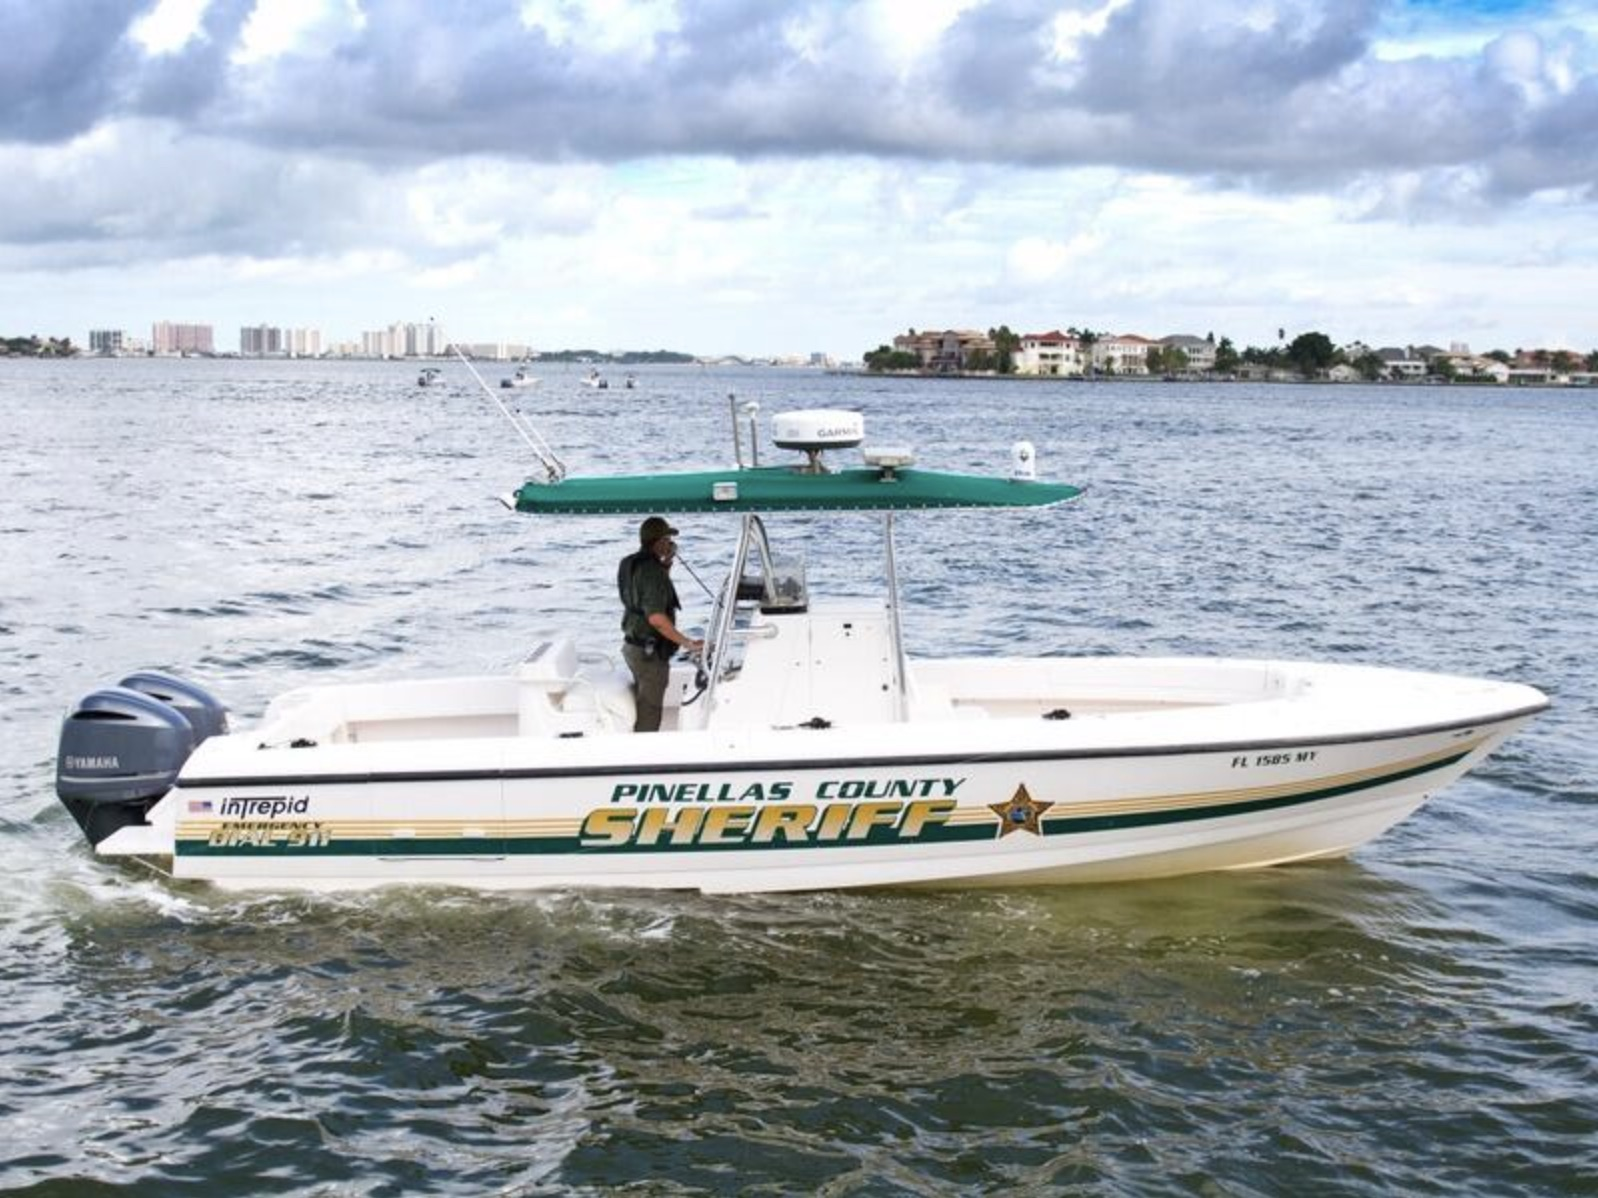 A Pinellas County Sheriff's Marine Unit boat with one driver out on the water with houses in the background.